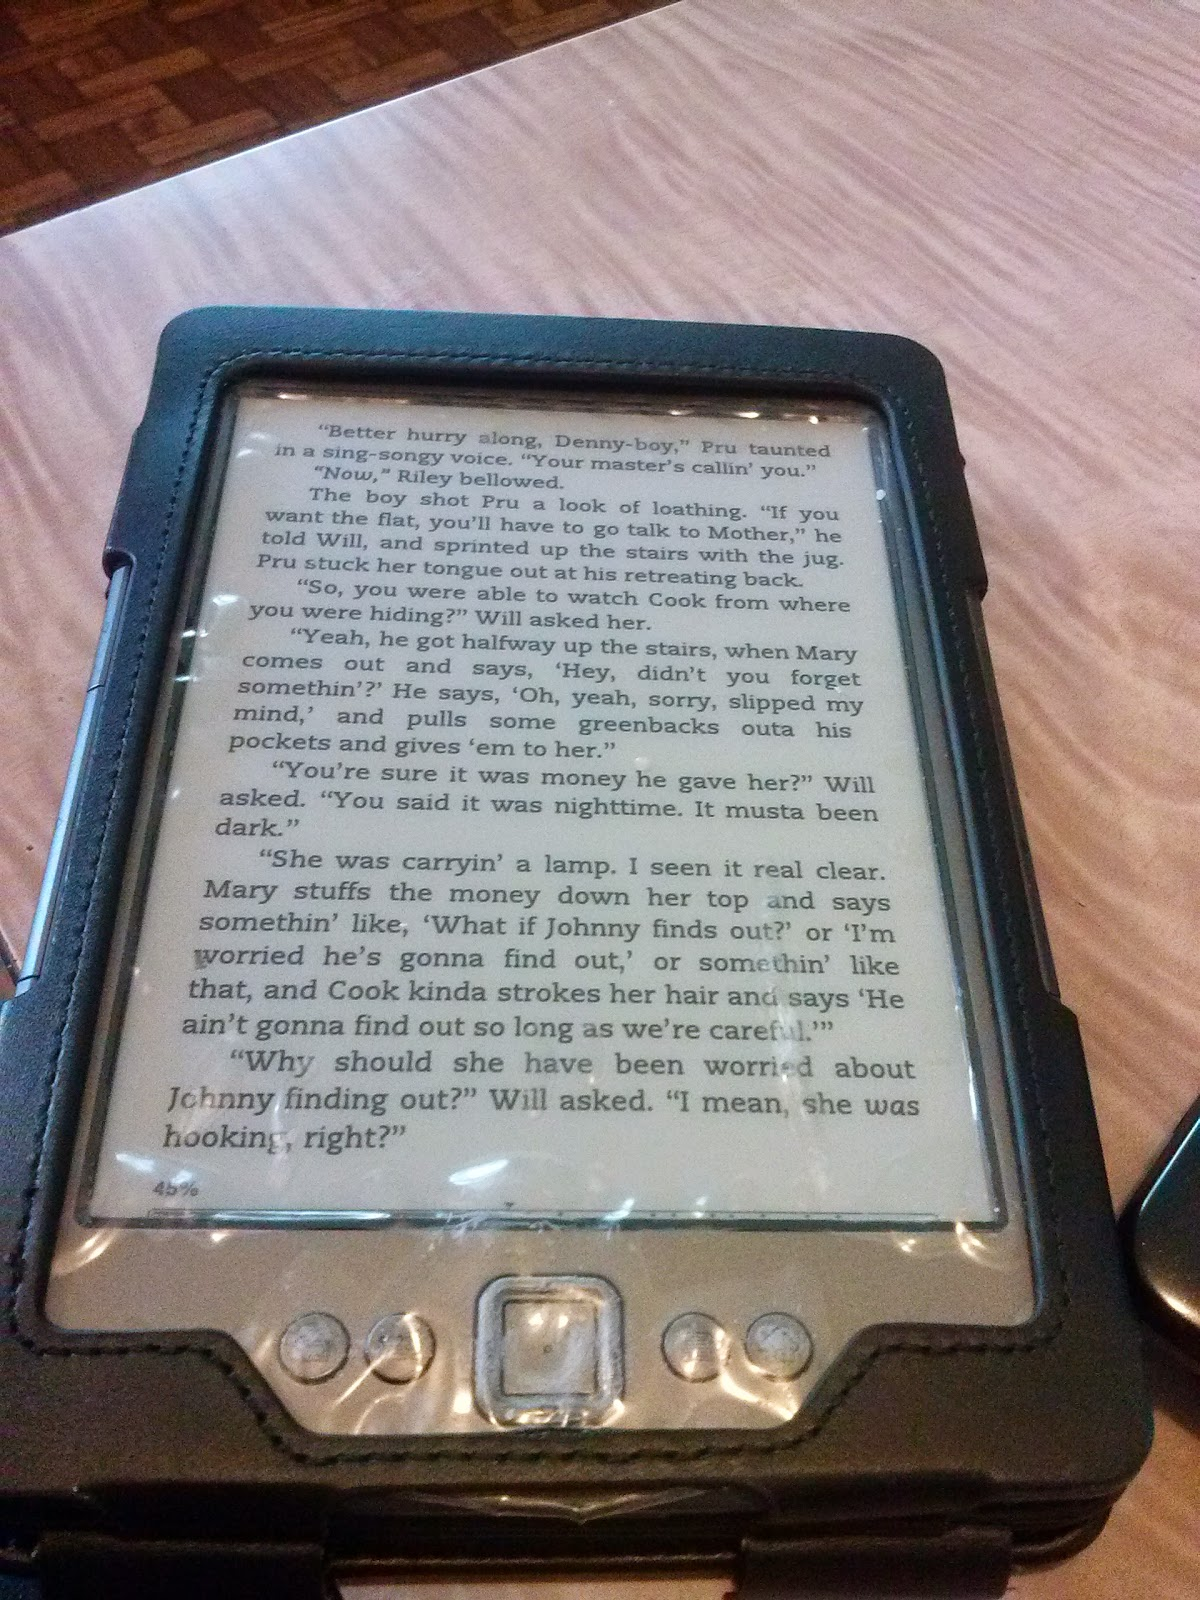 Loving reading on my kindle